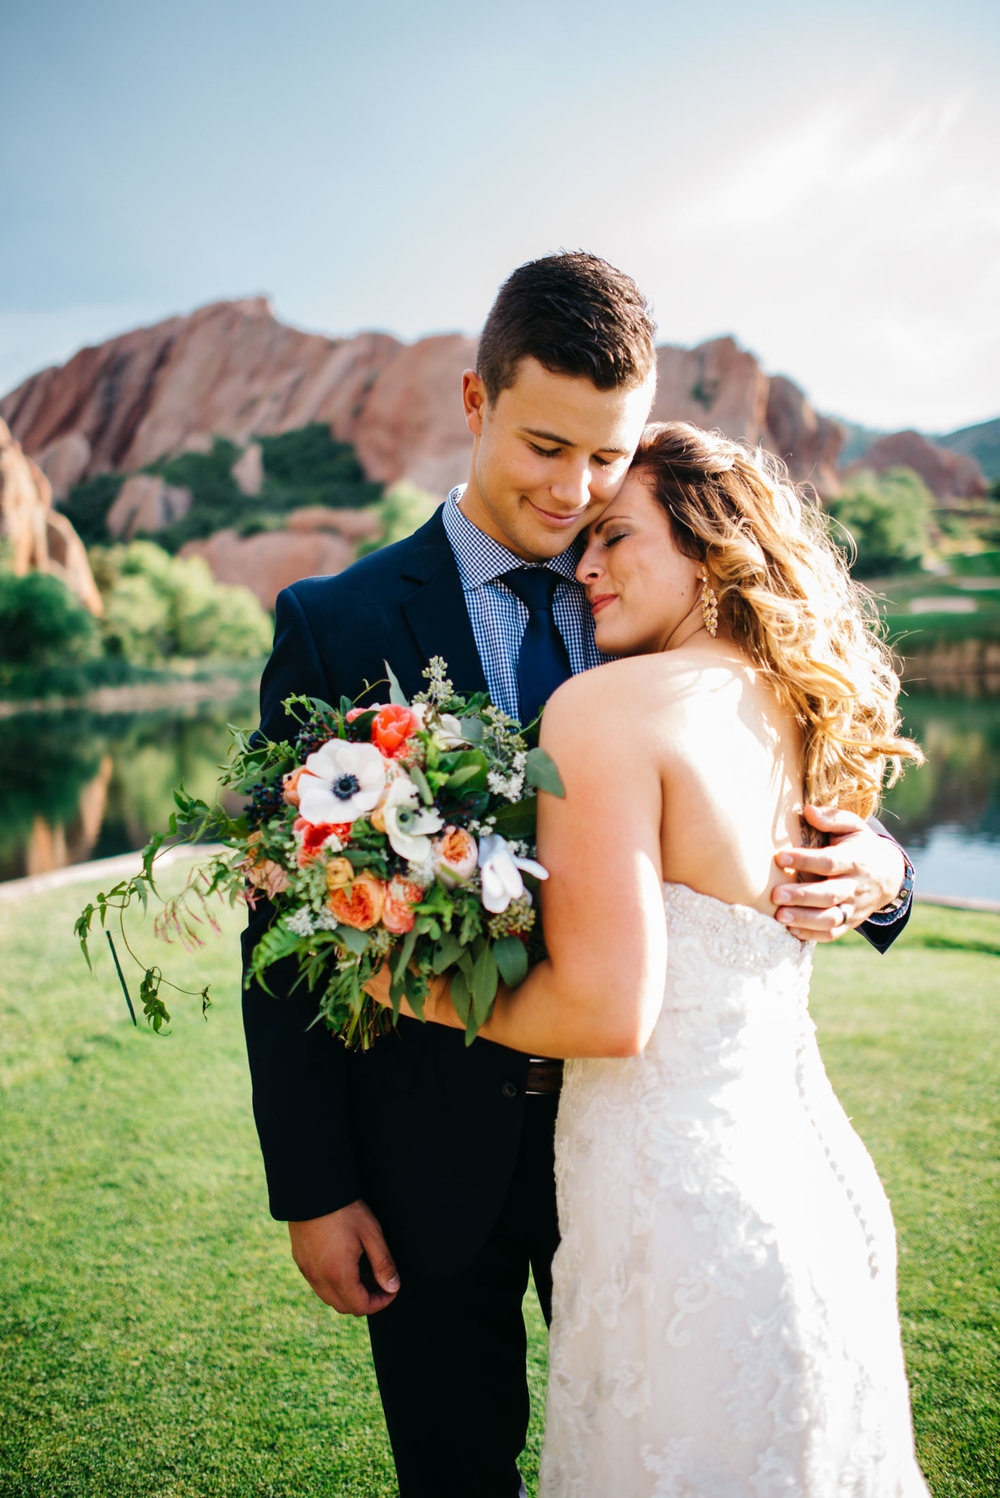 38elopement-photographer-colorado-arrowhead-wedding-jordan&jace-2893.jpg